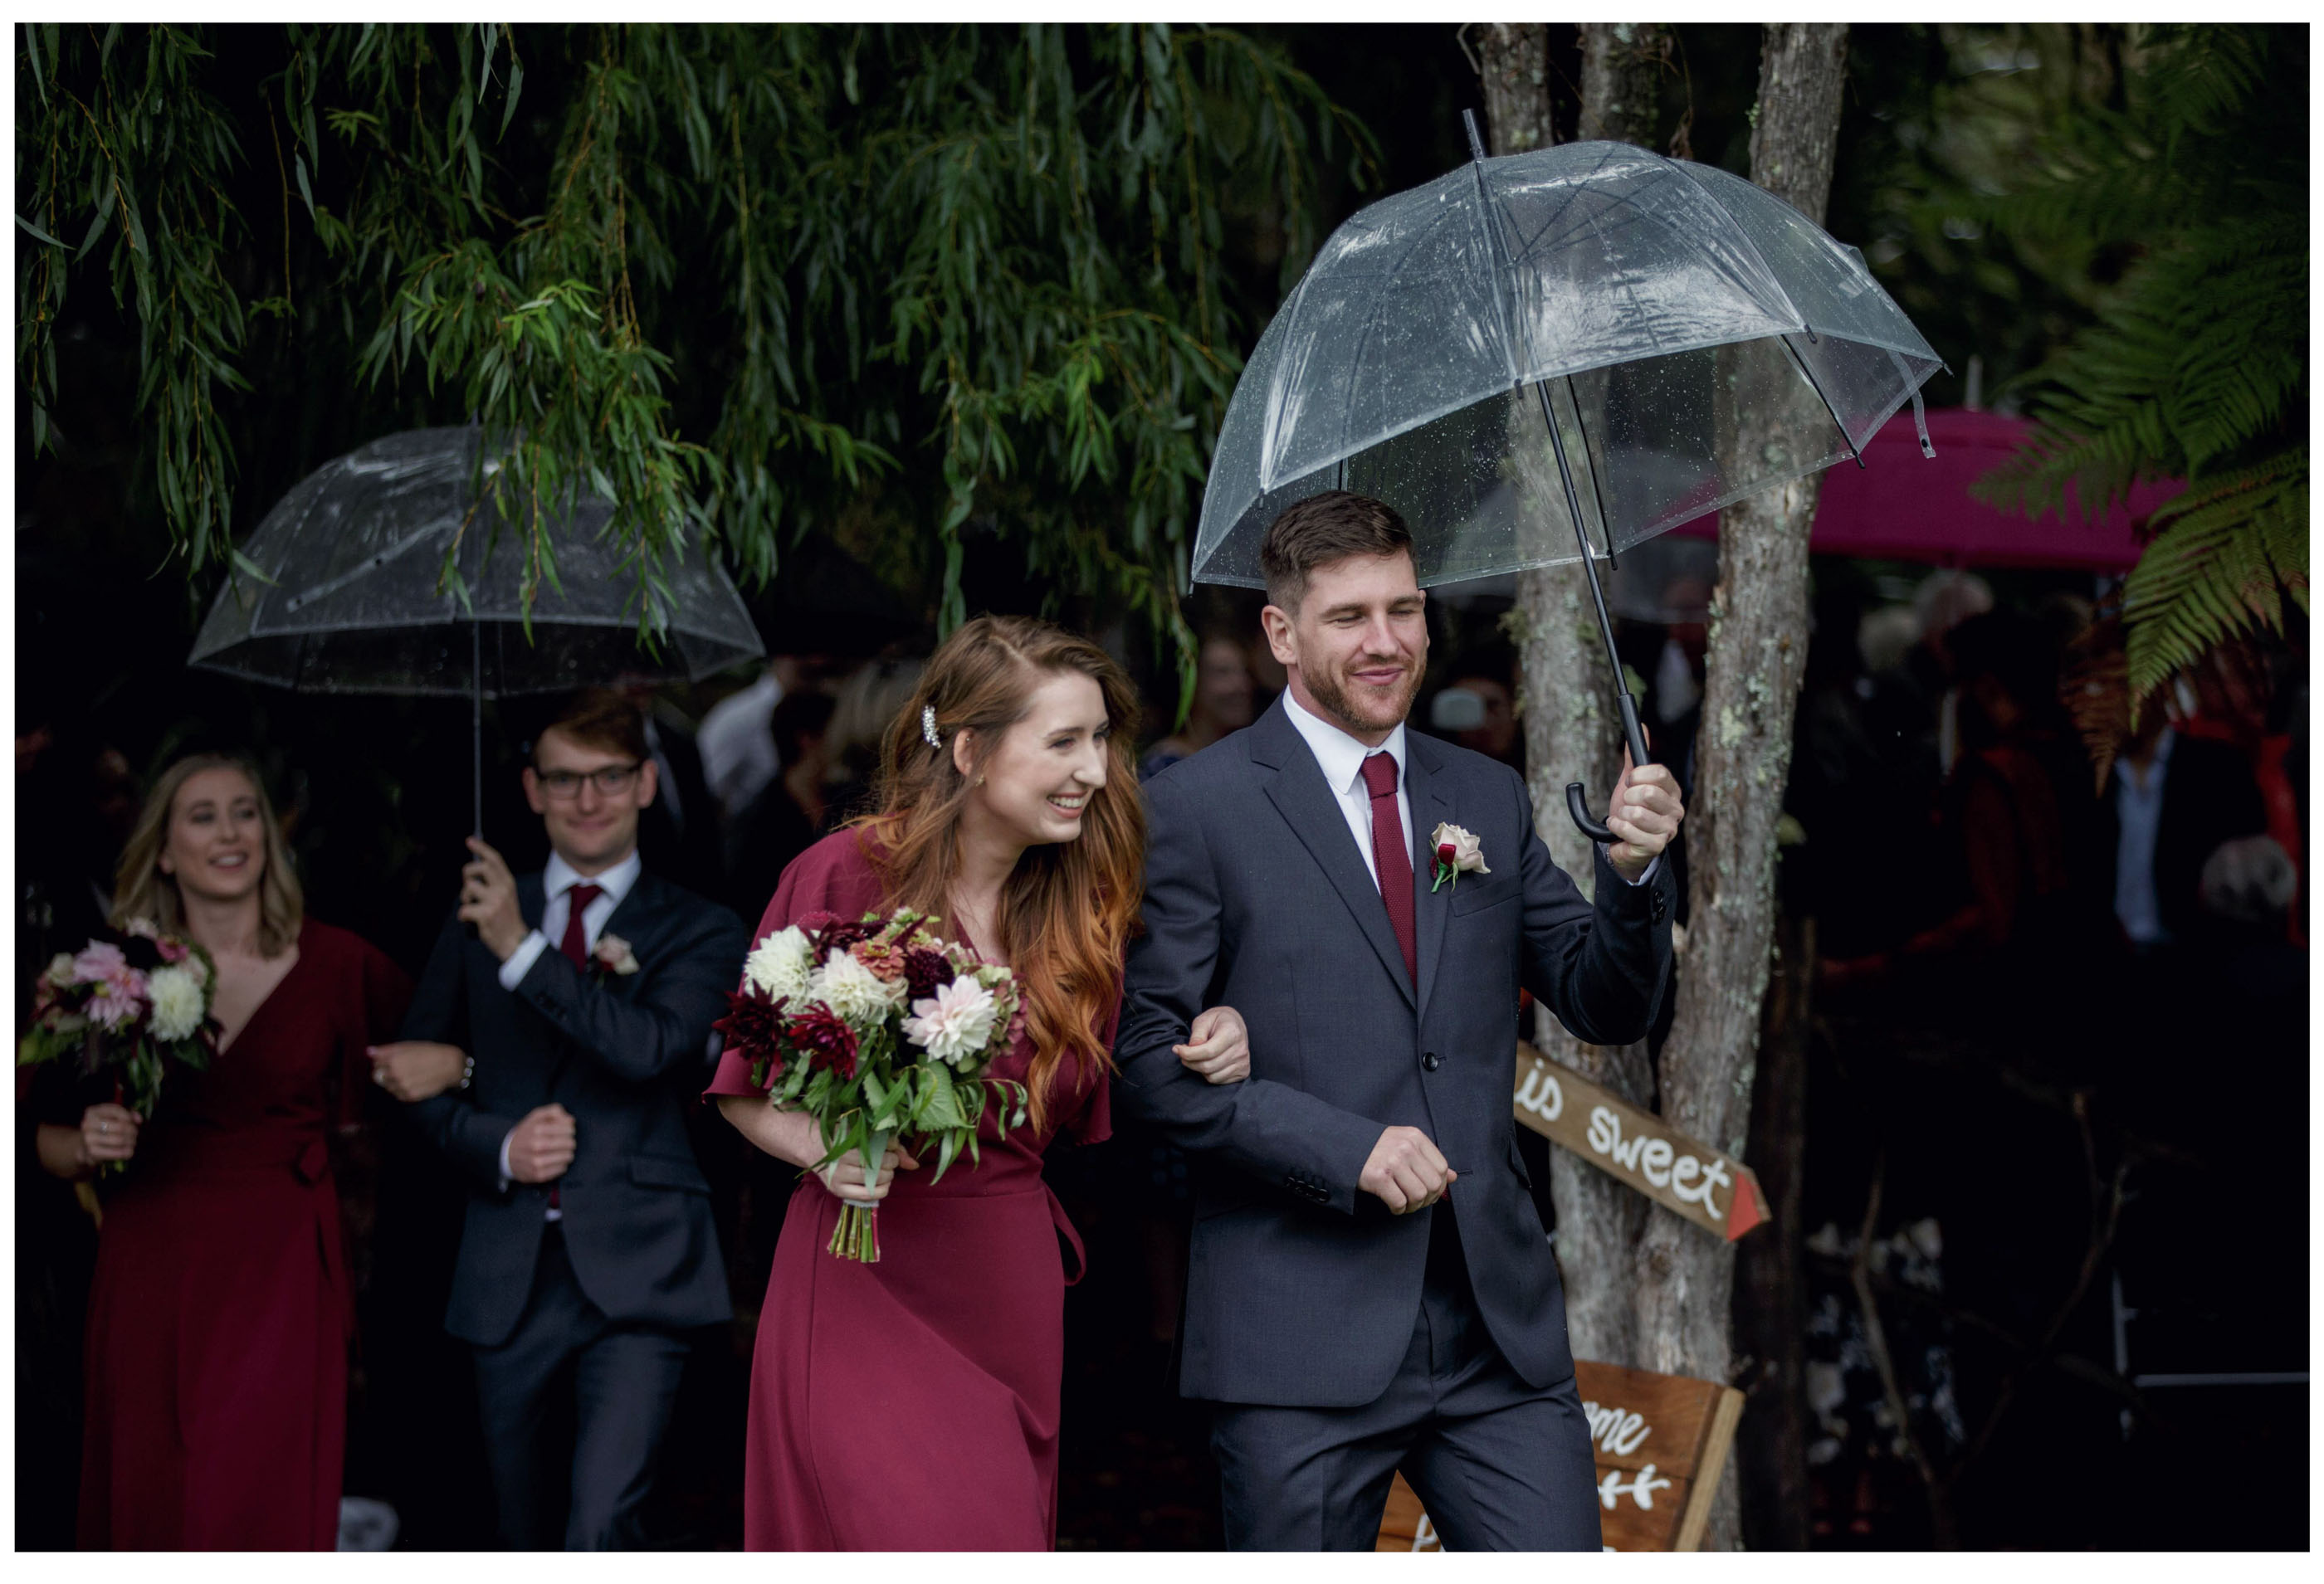 Bridesmaid and groomsman leave rainy wedding ceremony with clear umbrella